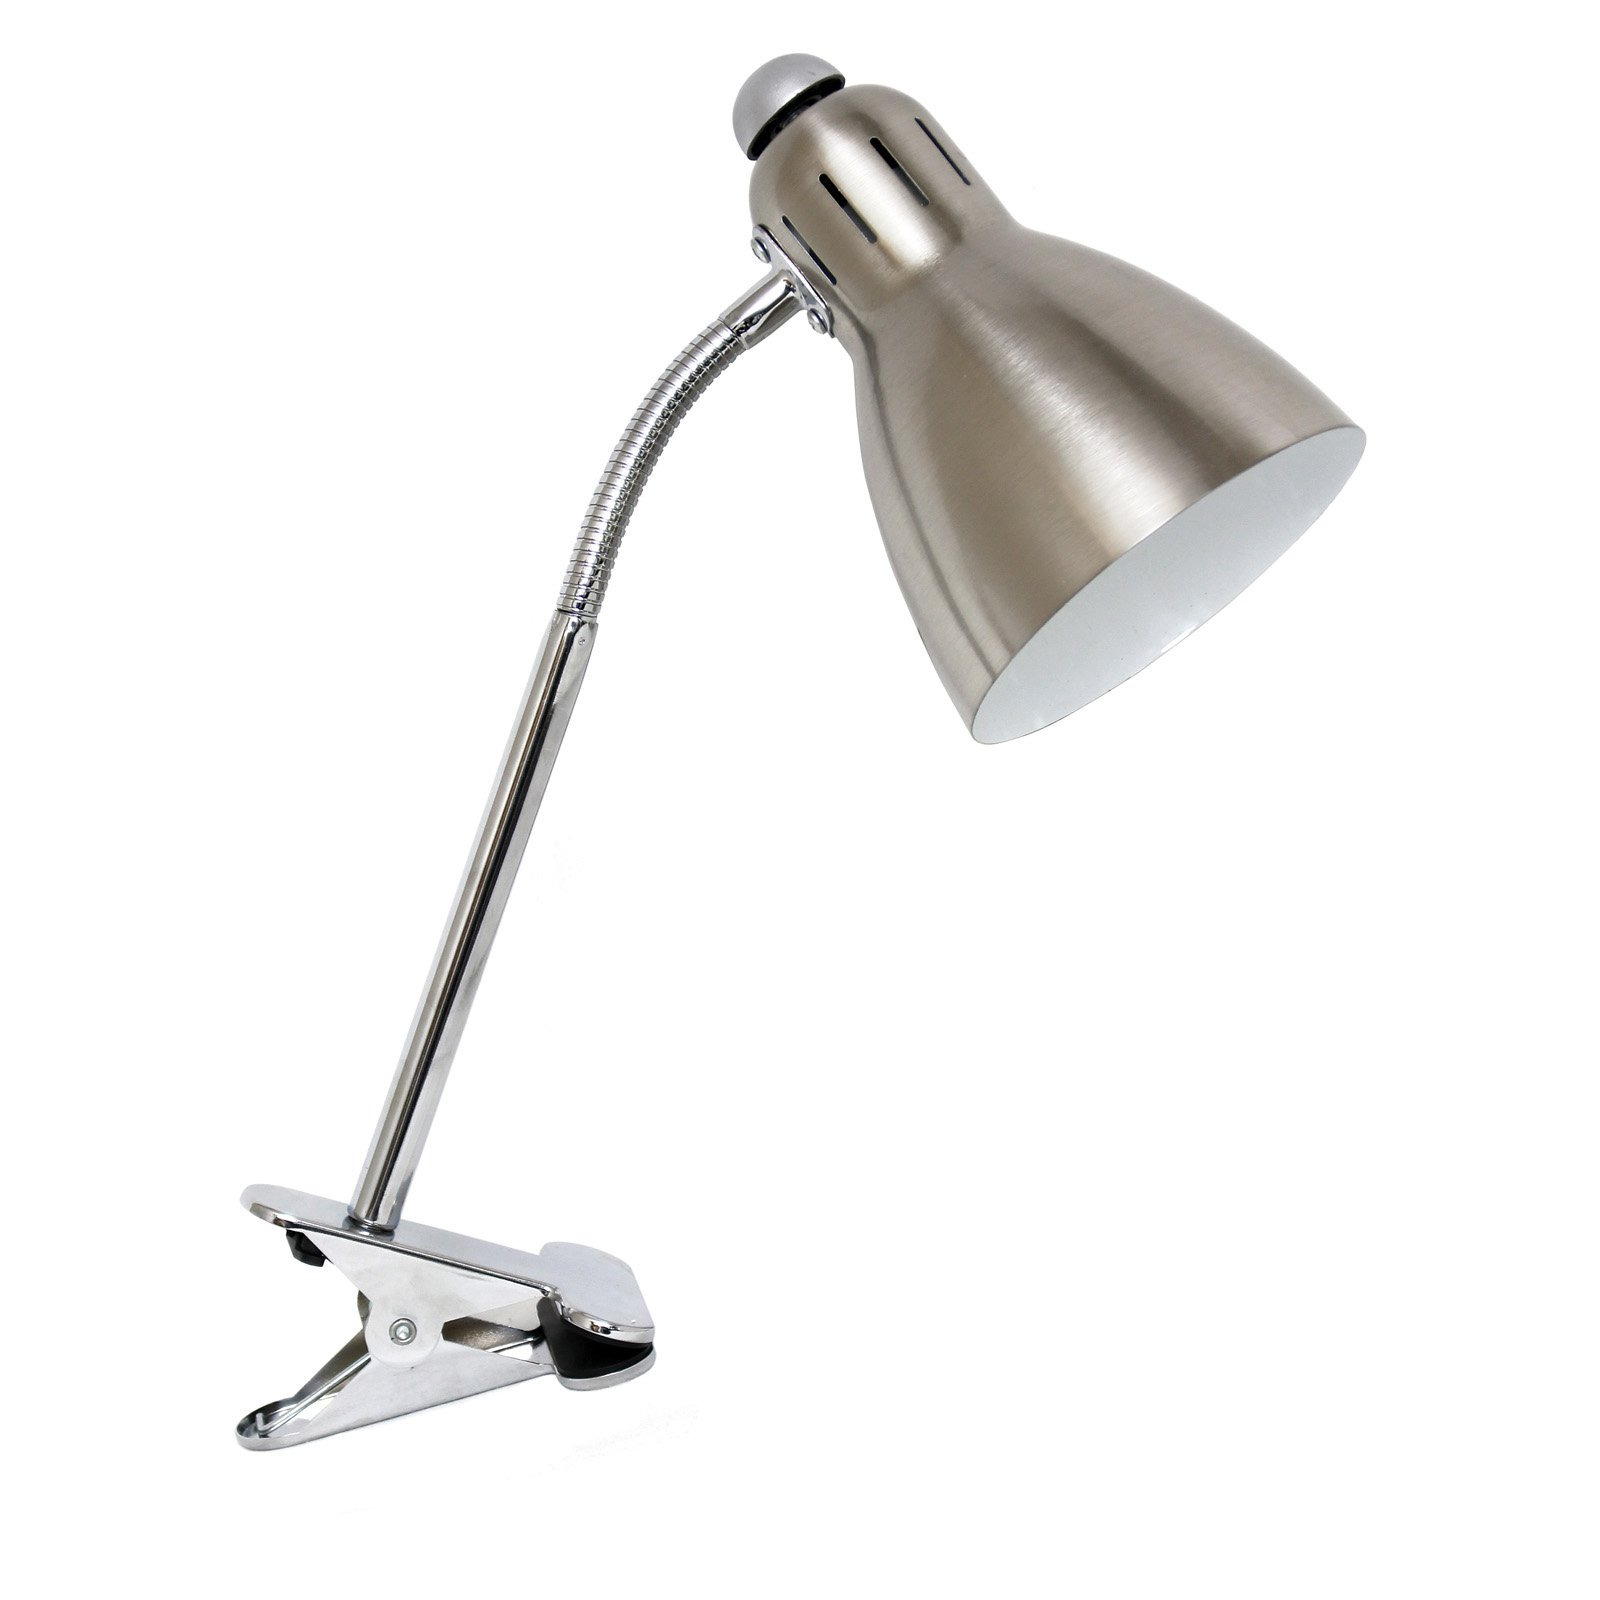 Simple Designs Adjustable Clip Light Desk Lamp, Brushed Nickel by All the Rages Inc